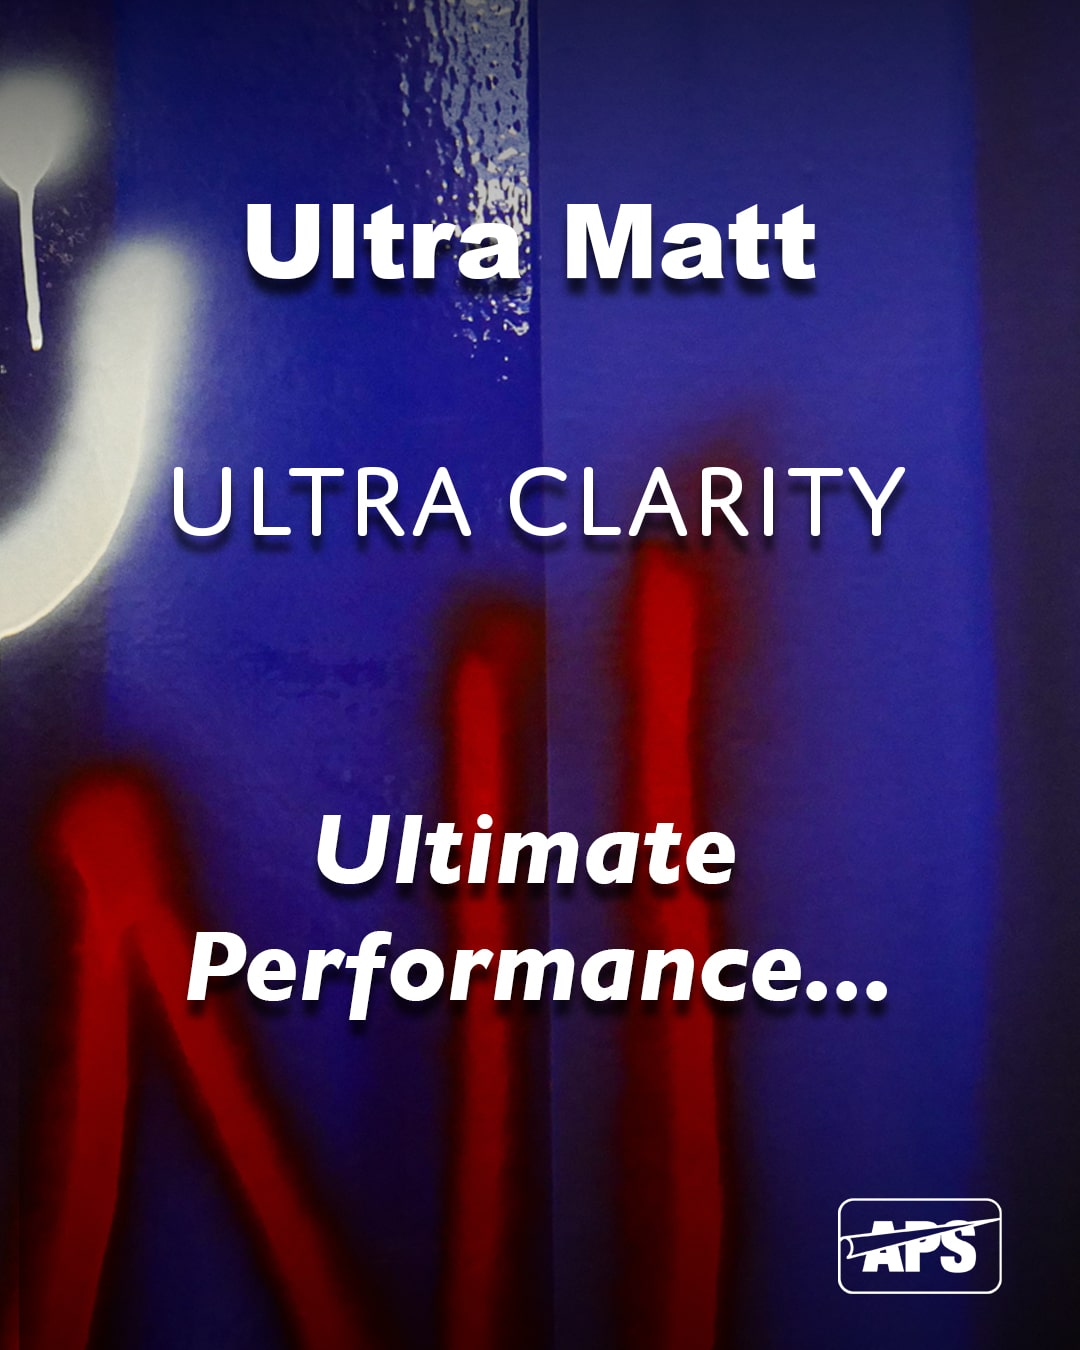 Background blue & black printed image overlaminated with T25-P Ultra Matt anti-graffiti laminate. Graffiti has been sprayed onto the graphic in red and white spray paint and the advertsing text says ultra matt, ultra clarity, ultimate performance. Just clean with anti graffiti cleaning agents to remove the graffiti vandalism!